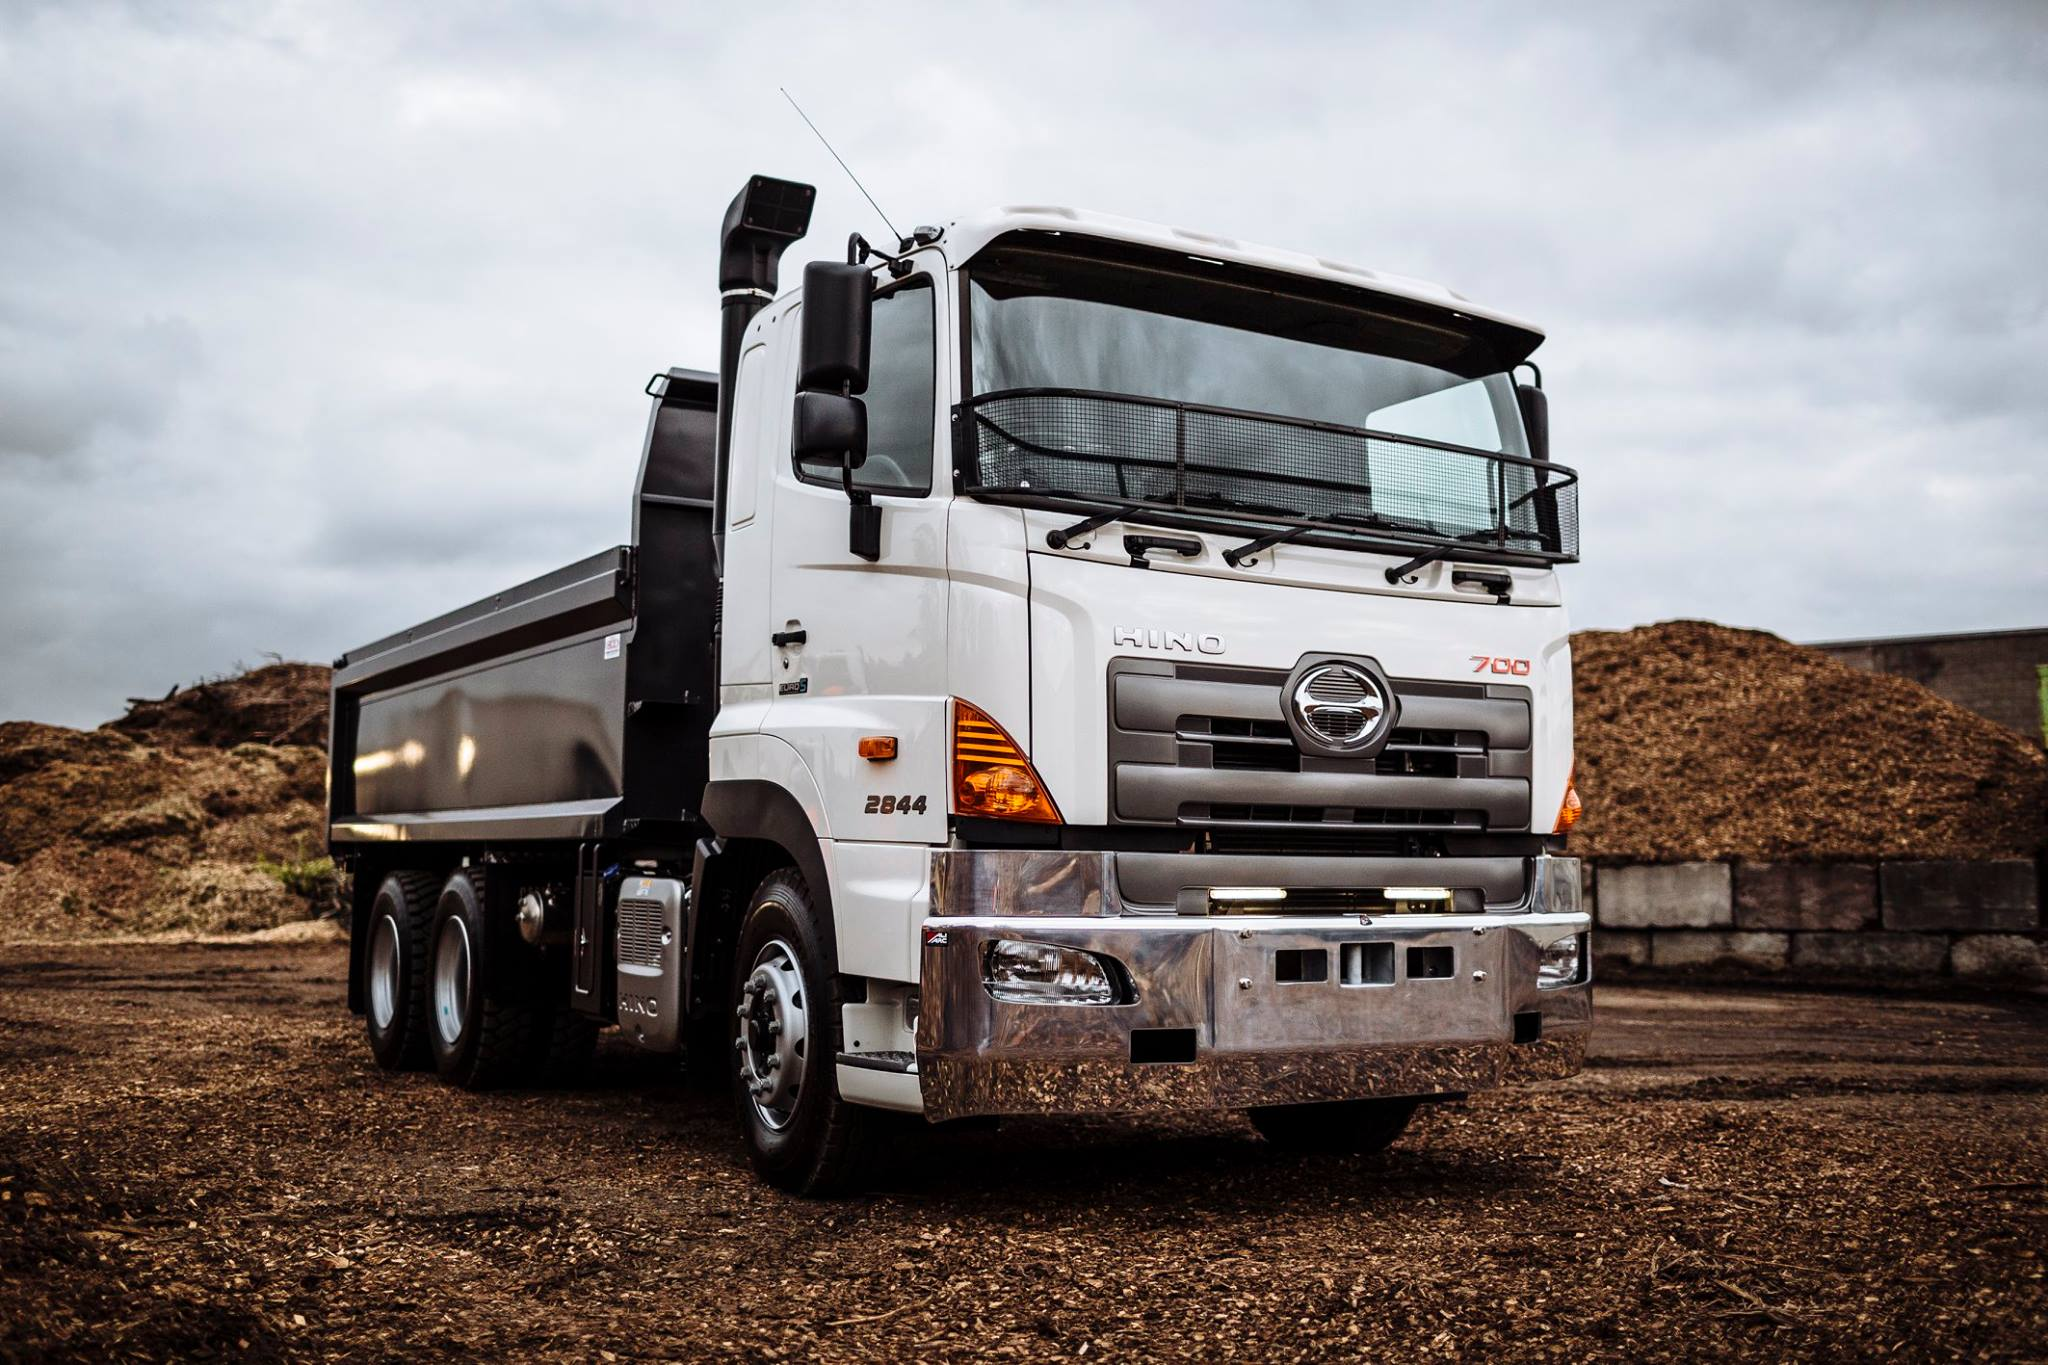 700 Series 6x4 Tipper 440/480hp Full Cab Suspension